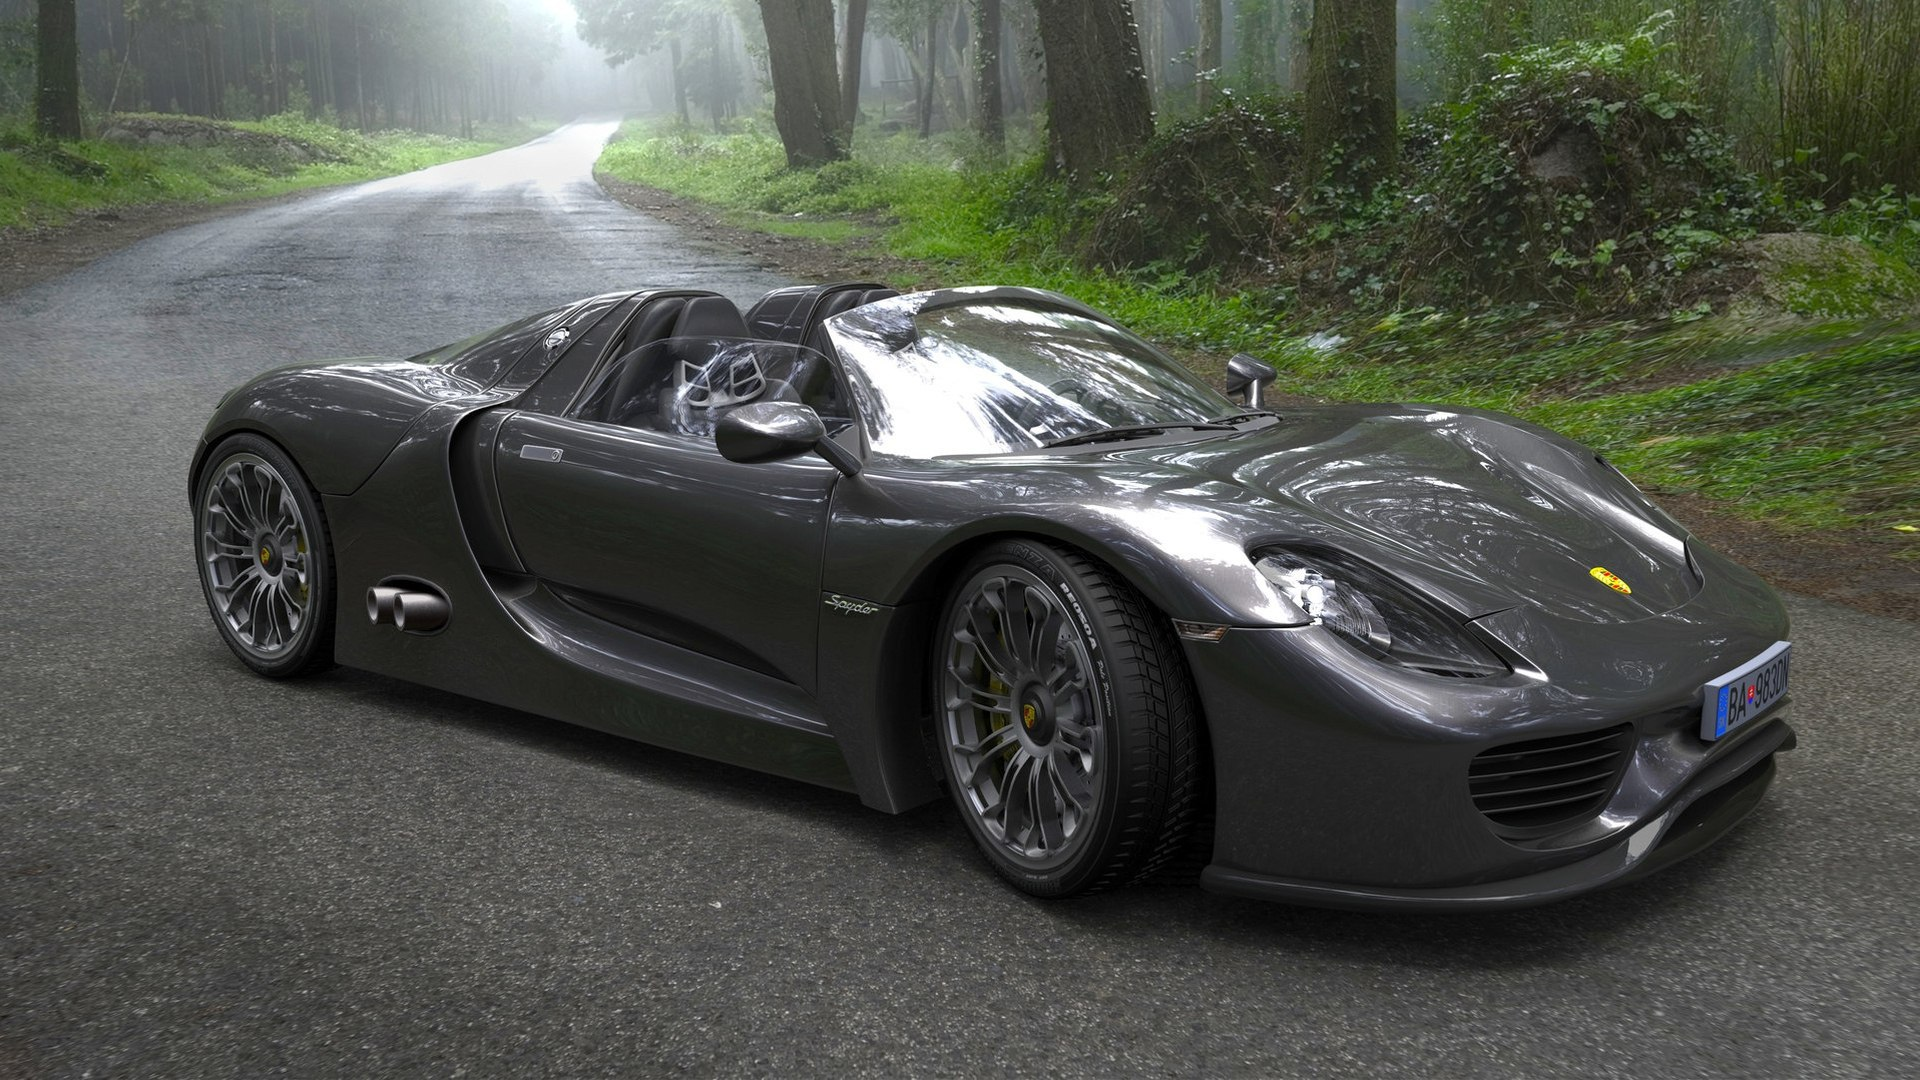 Free Download Awesome Porsche 918 Spyder Wallpaper Full Hd